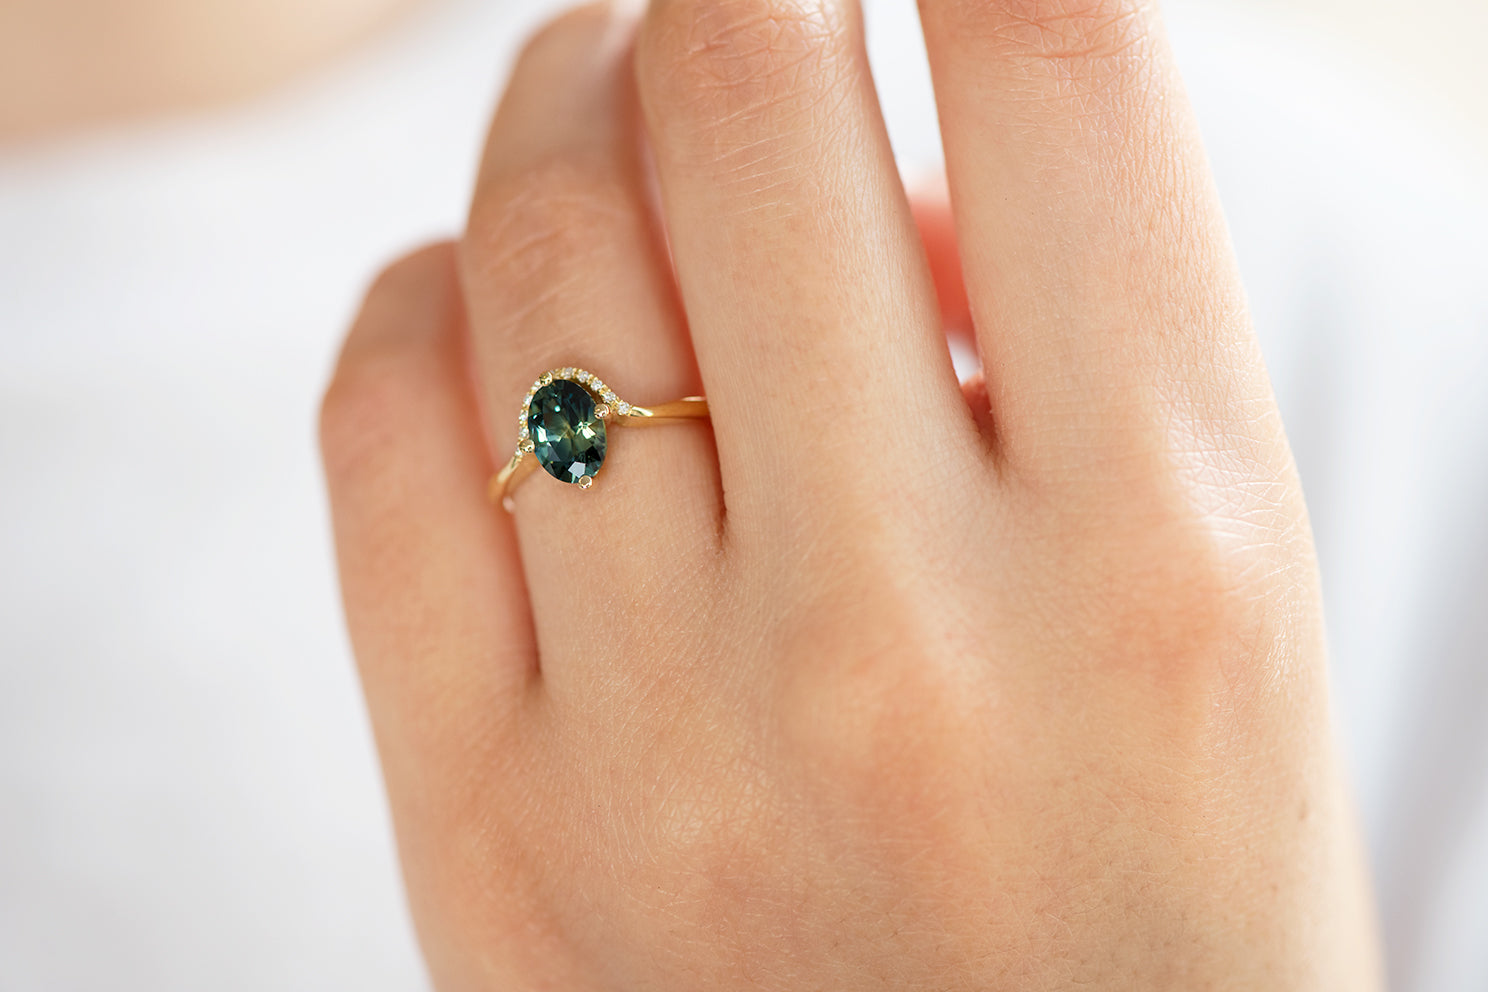 Teal Sapphire Engagement Ring - OOAK on Hand on White on Hand